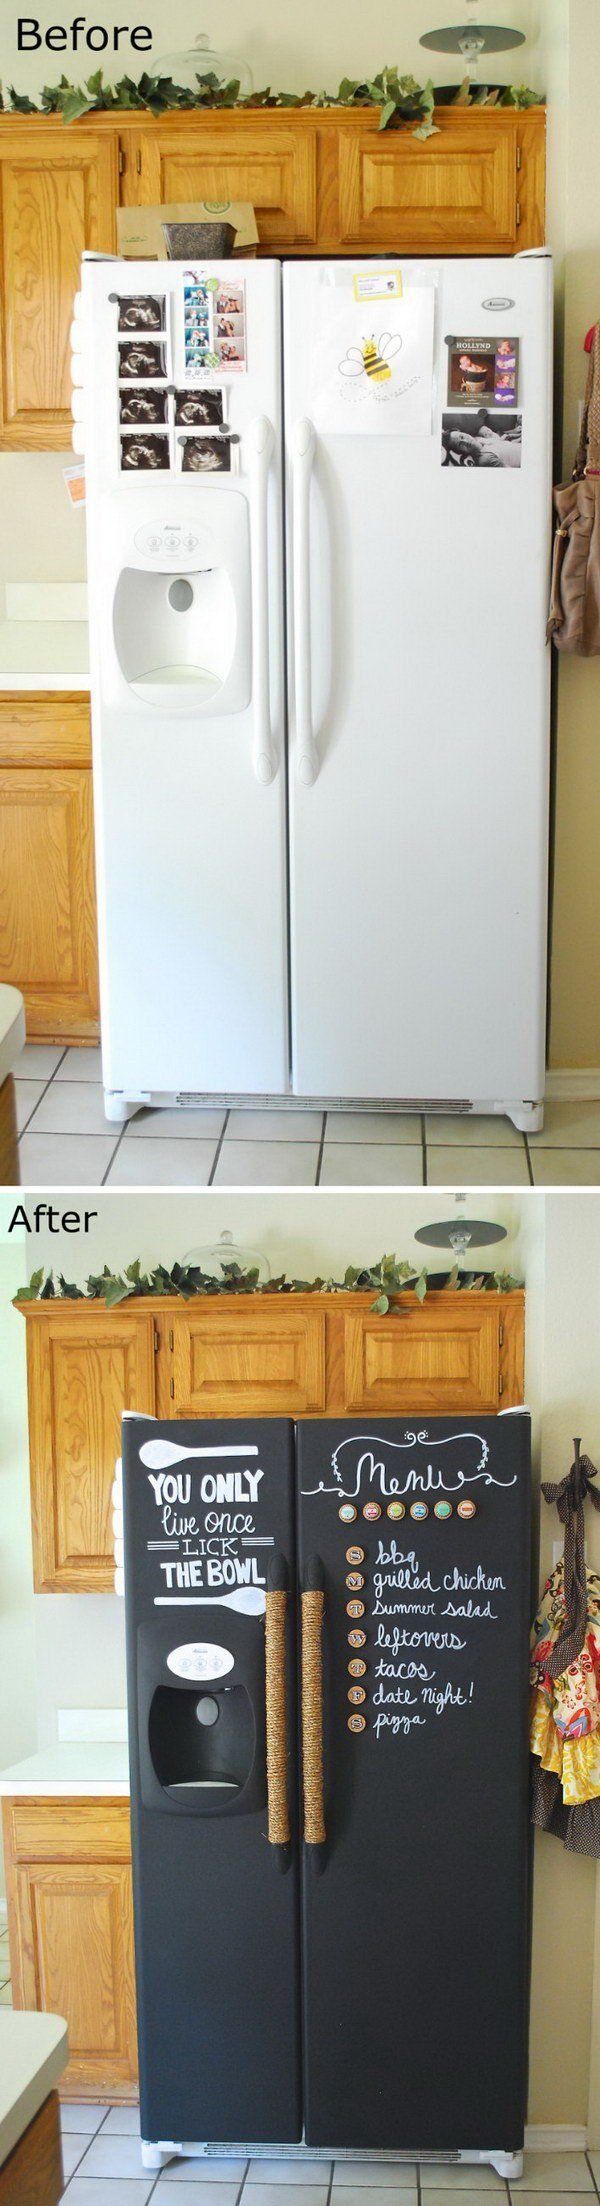 best 25 chalkboard paint refrigerator ideas on pinterest genius kitchen makeover ideas that would save you money chalkboard paint